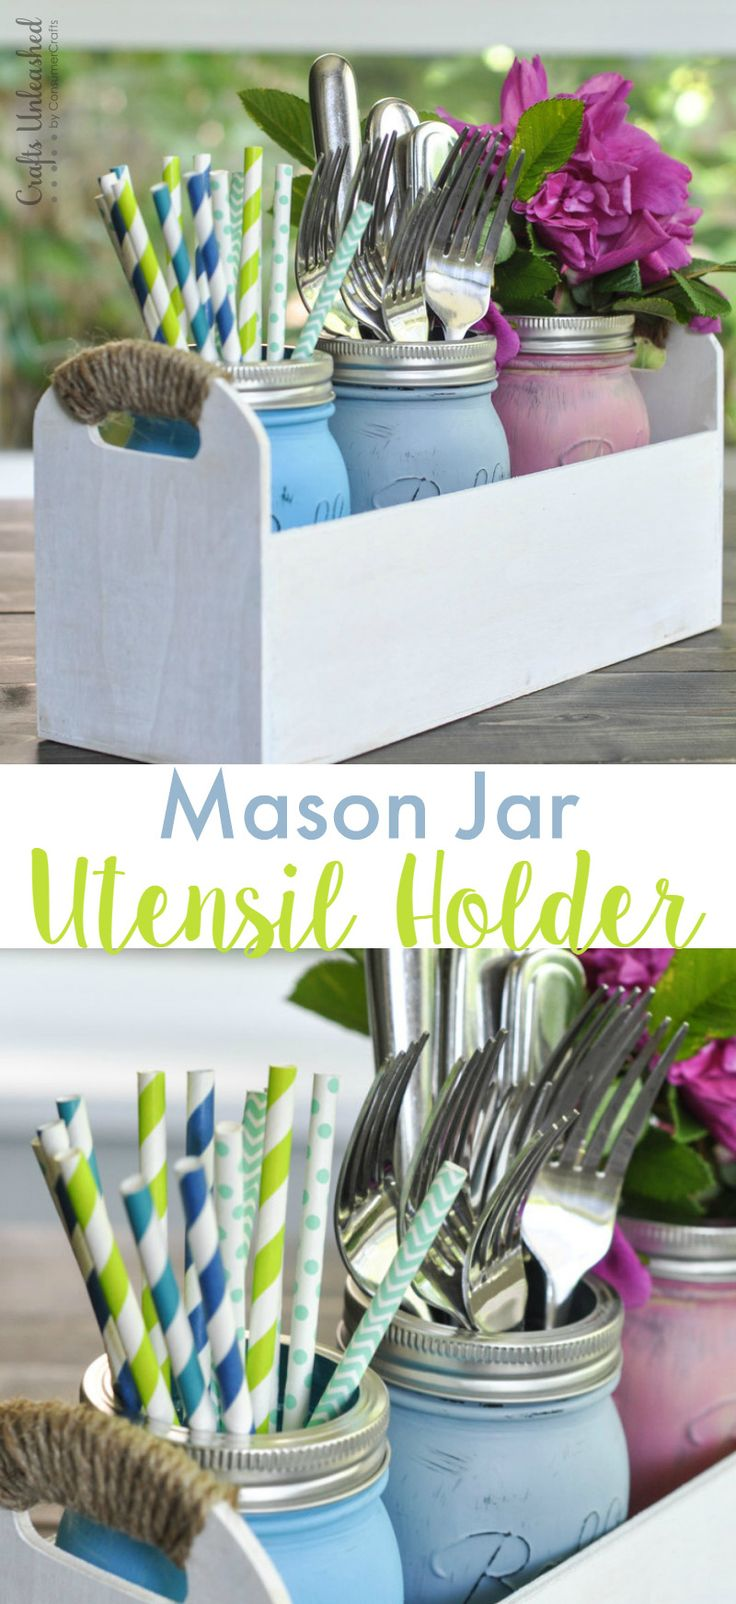 Make your own pretty DIY mason jar utensil caddy for dining outside this summer. Unlike pricey caddies you buy, you can fit whatever you'd like into this!